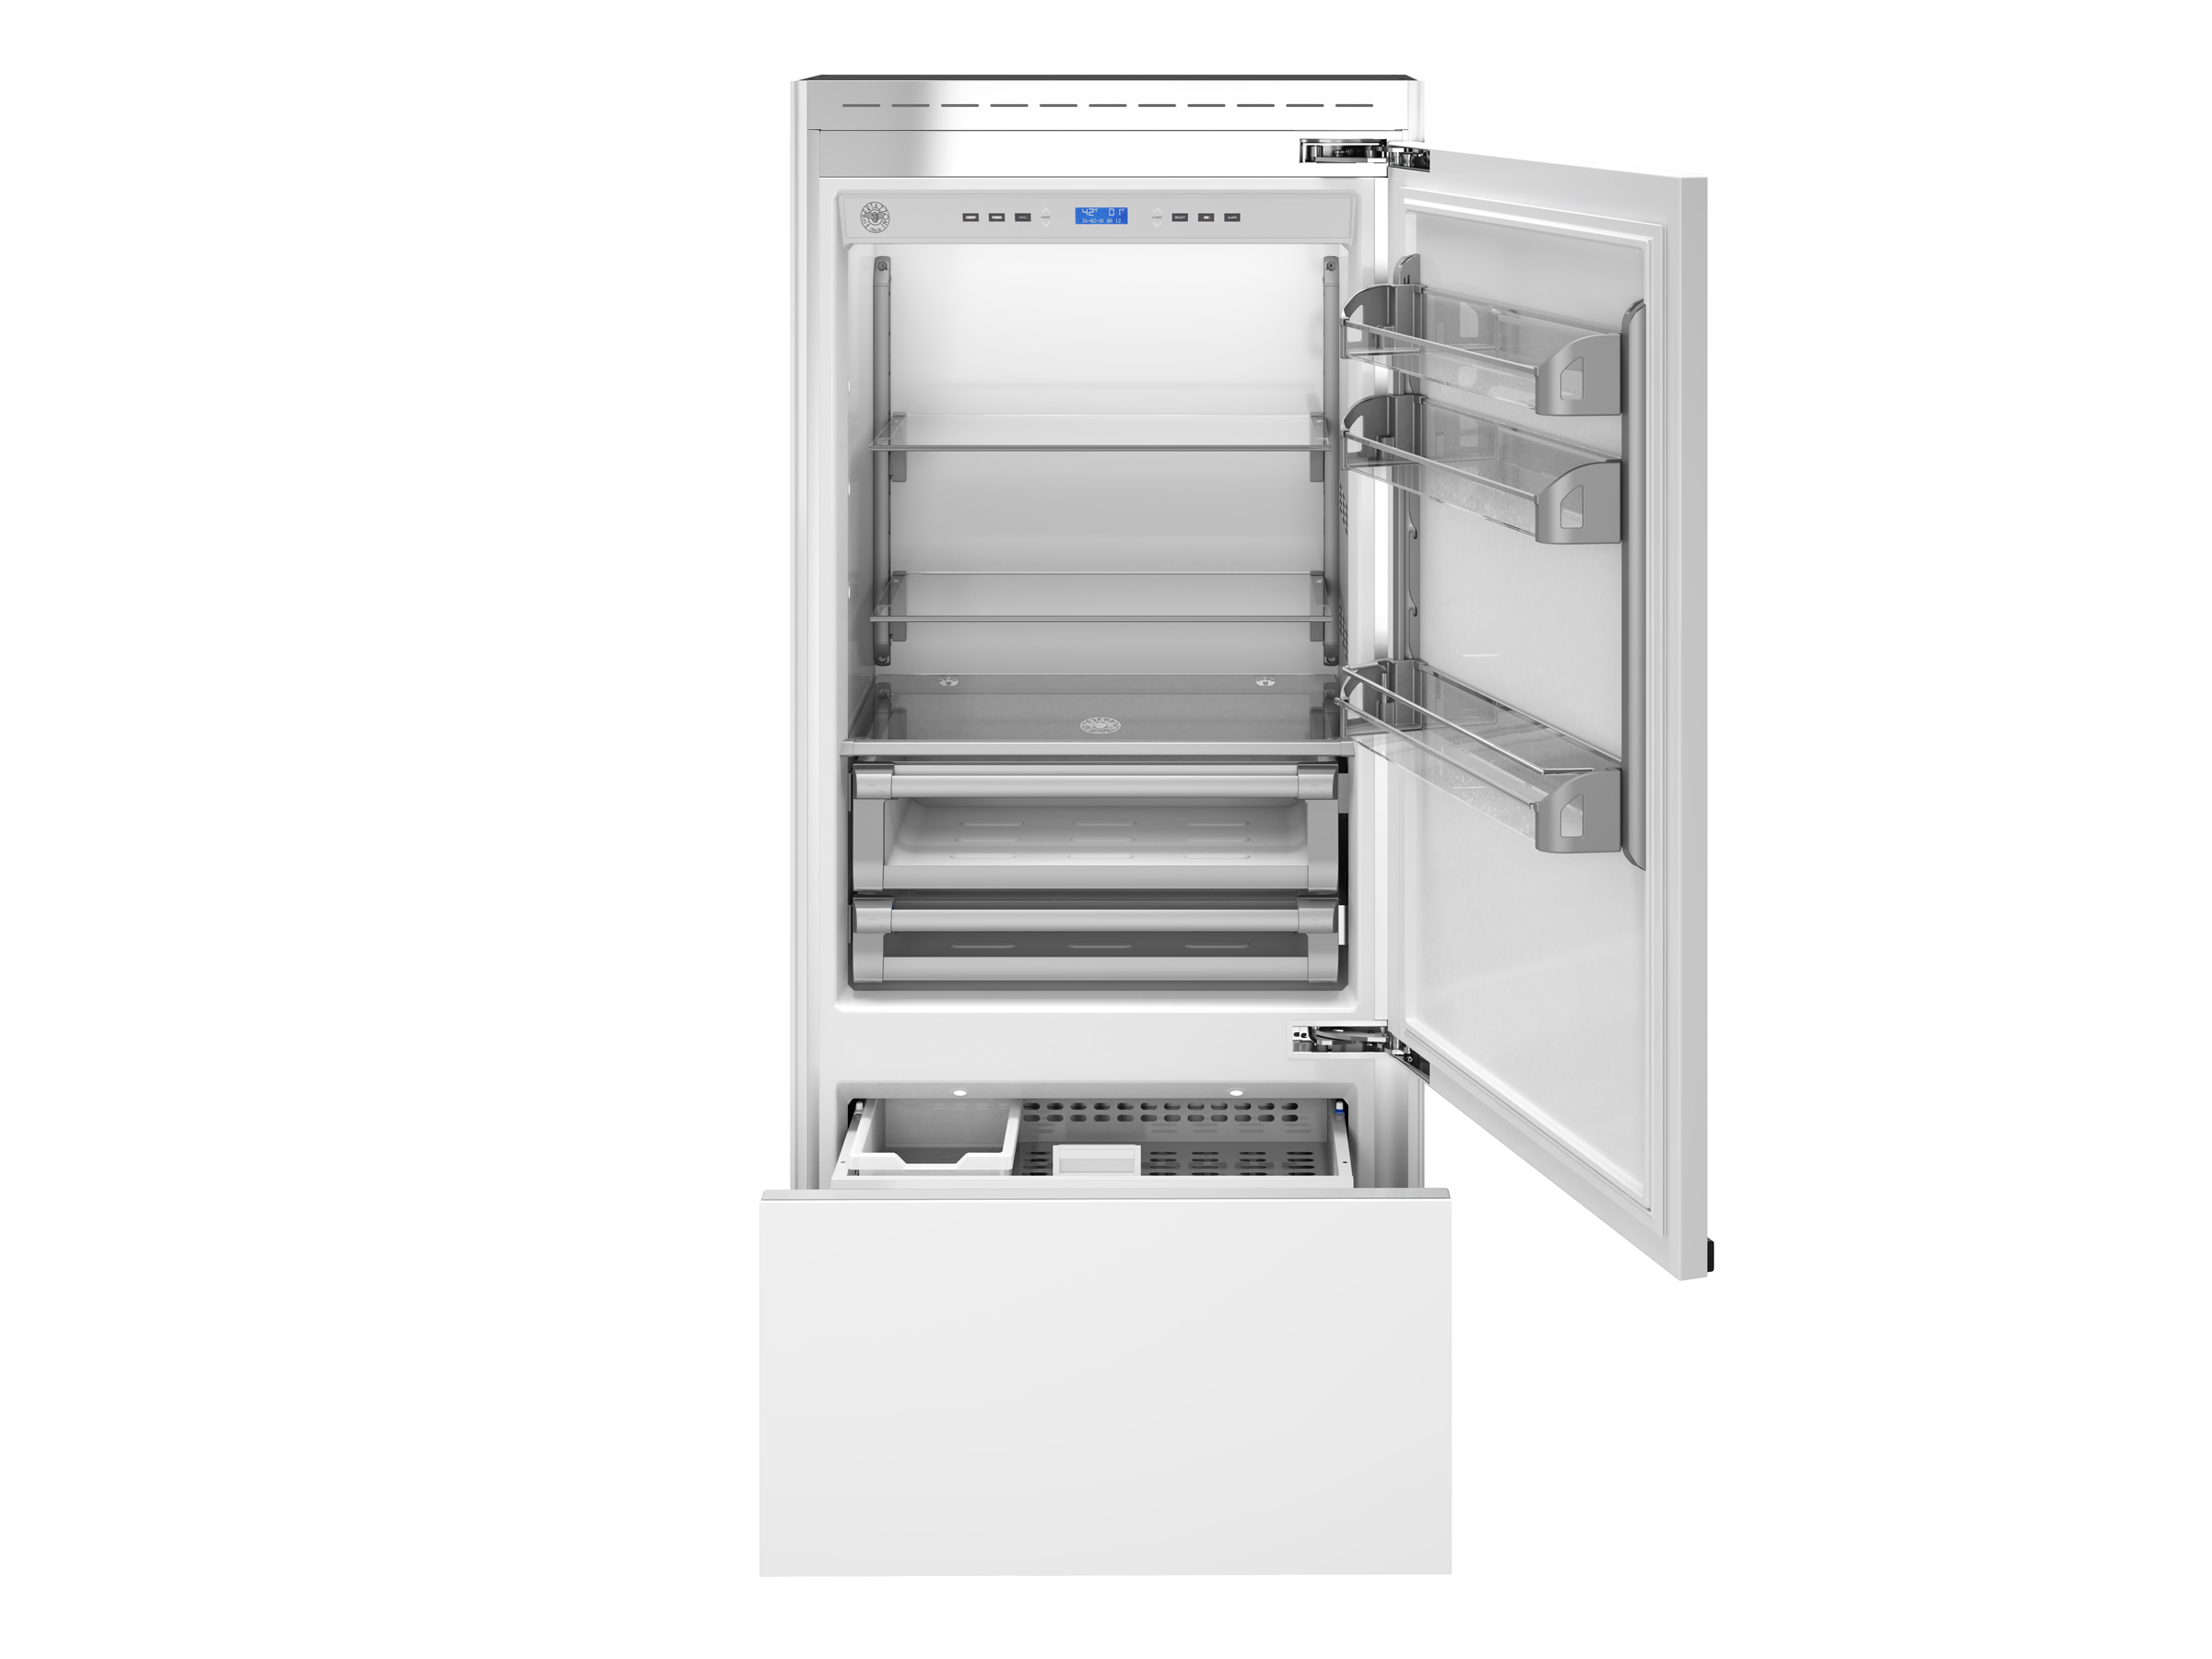 36 inch Built-In Bottom Mount Panel Ready | Bertazzoni - Stainless